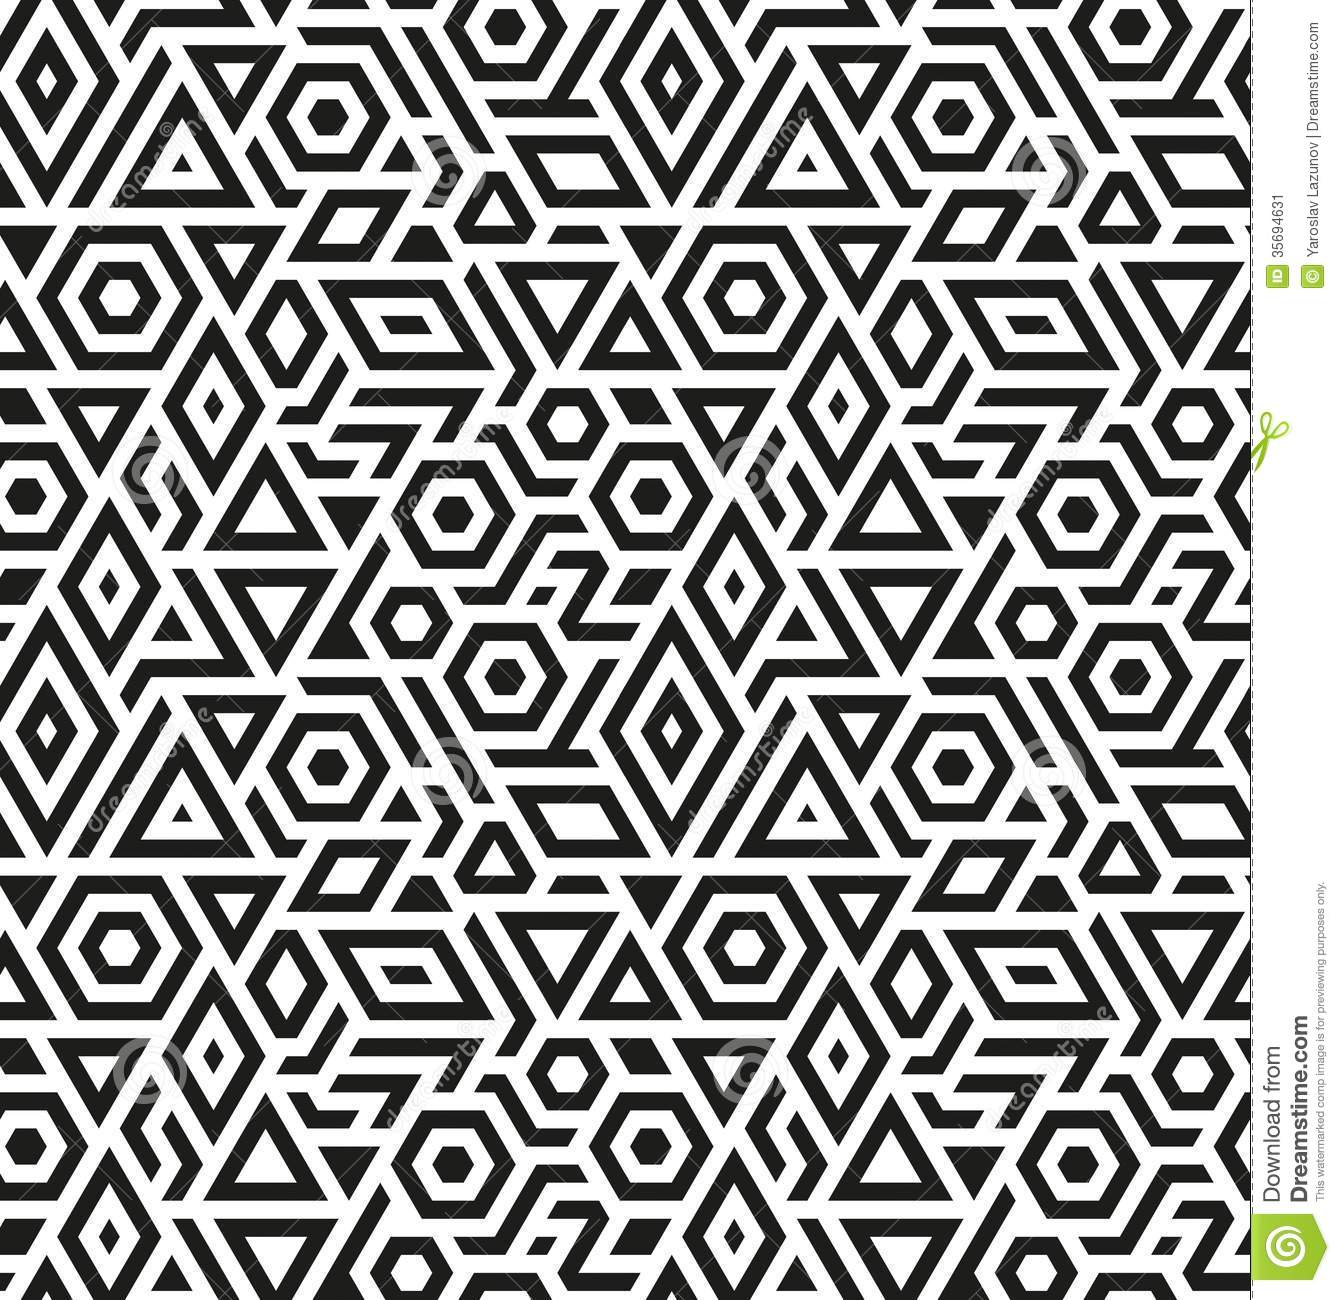 19 Vector Ornament Patterns Images